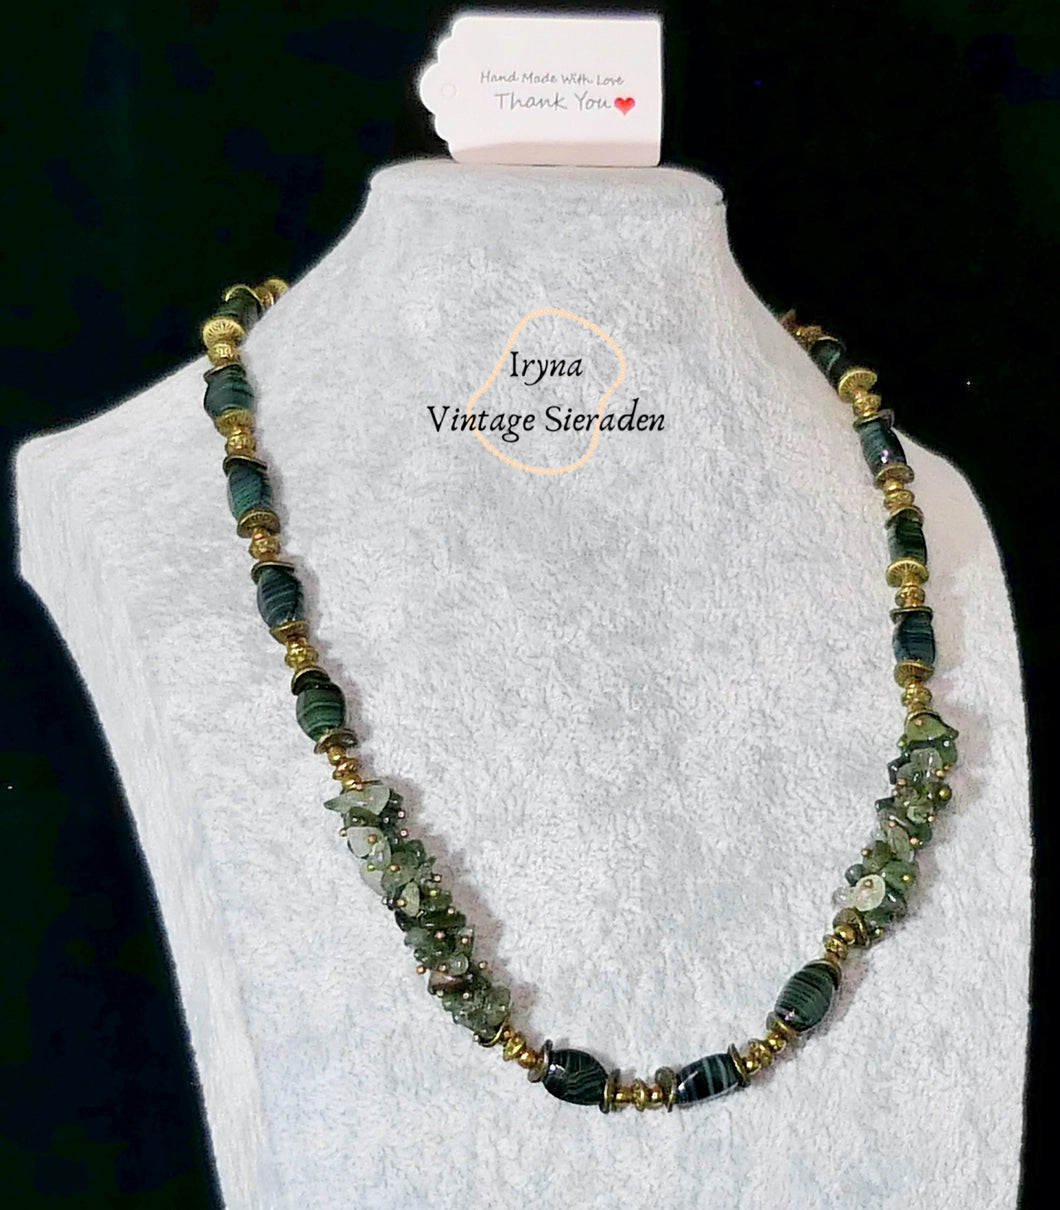 Necklace with Gemstones and Serpentine